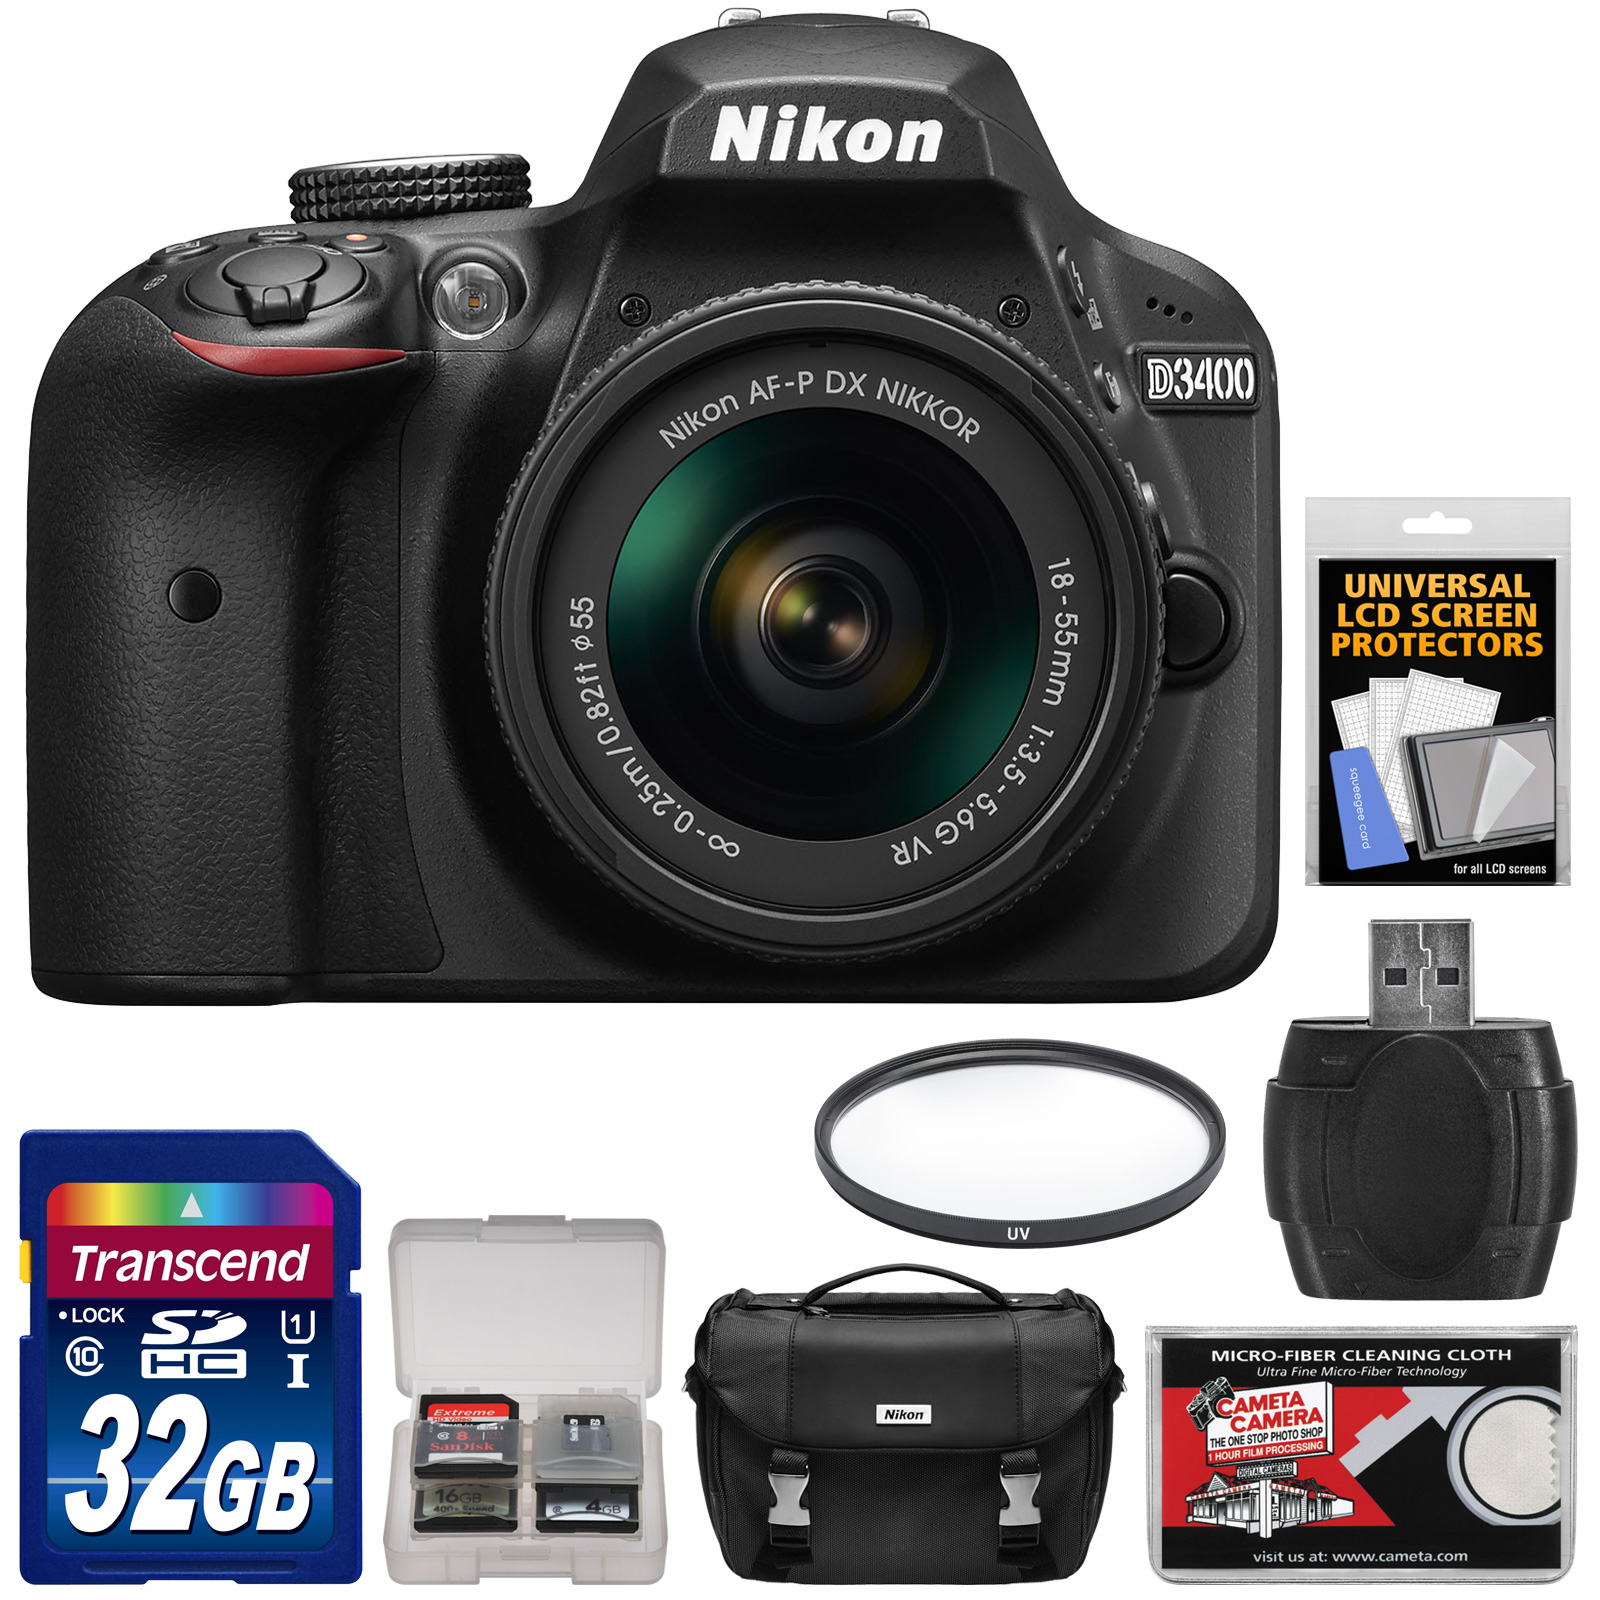 Nikon D3400 Digital SLR Camera & 18-55mm VR DX AF-P Zoom Lens (Black) - Refurbished with 32GB Card + Case + Reader + Filter + Kit